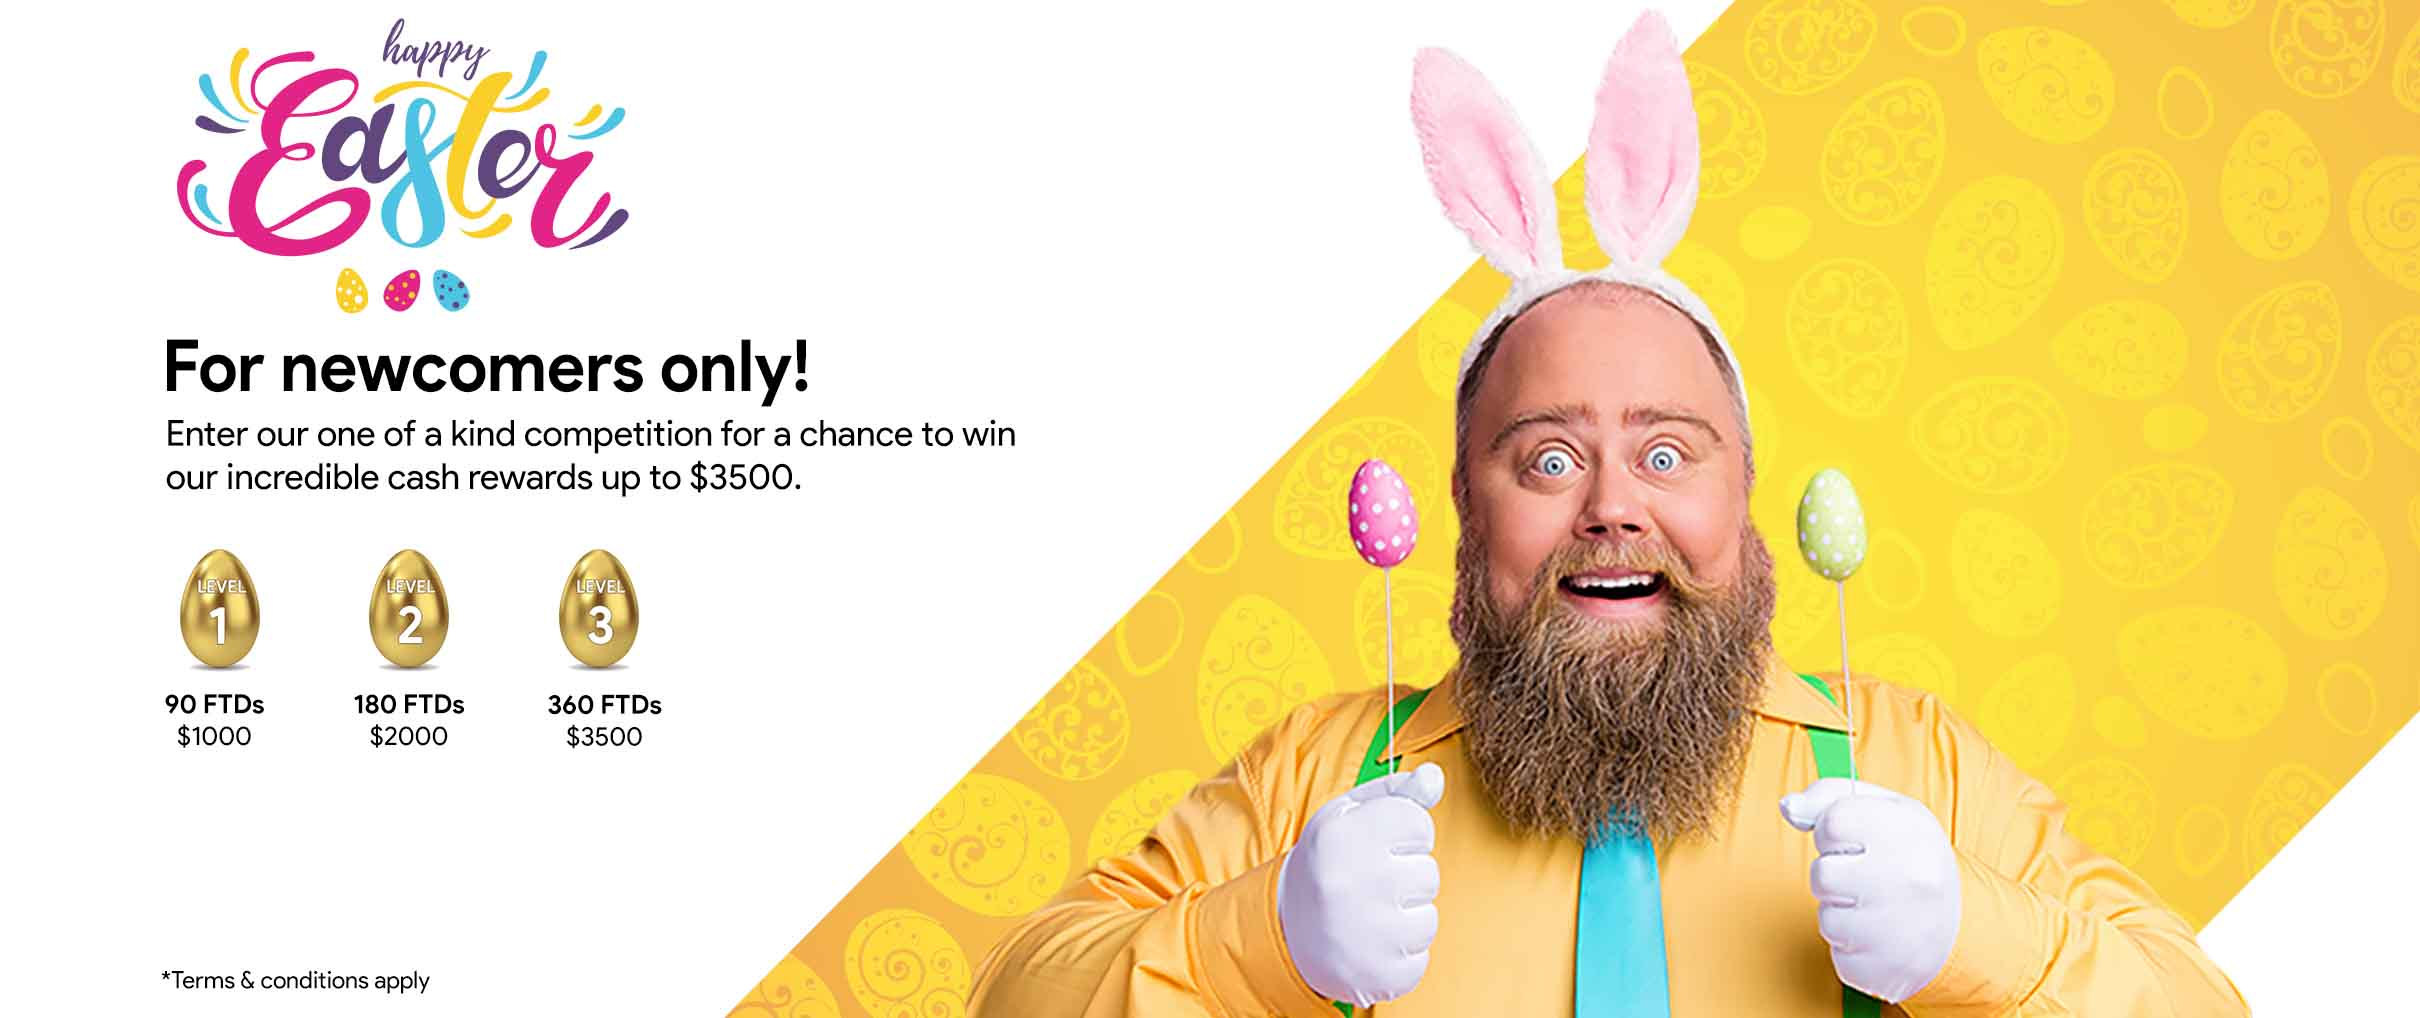 For new comers only - Easter afiiliates egg race. Win up to 3500$